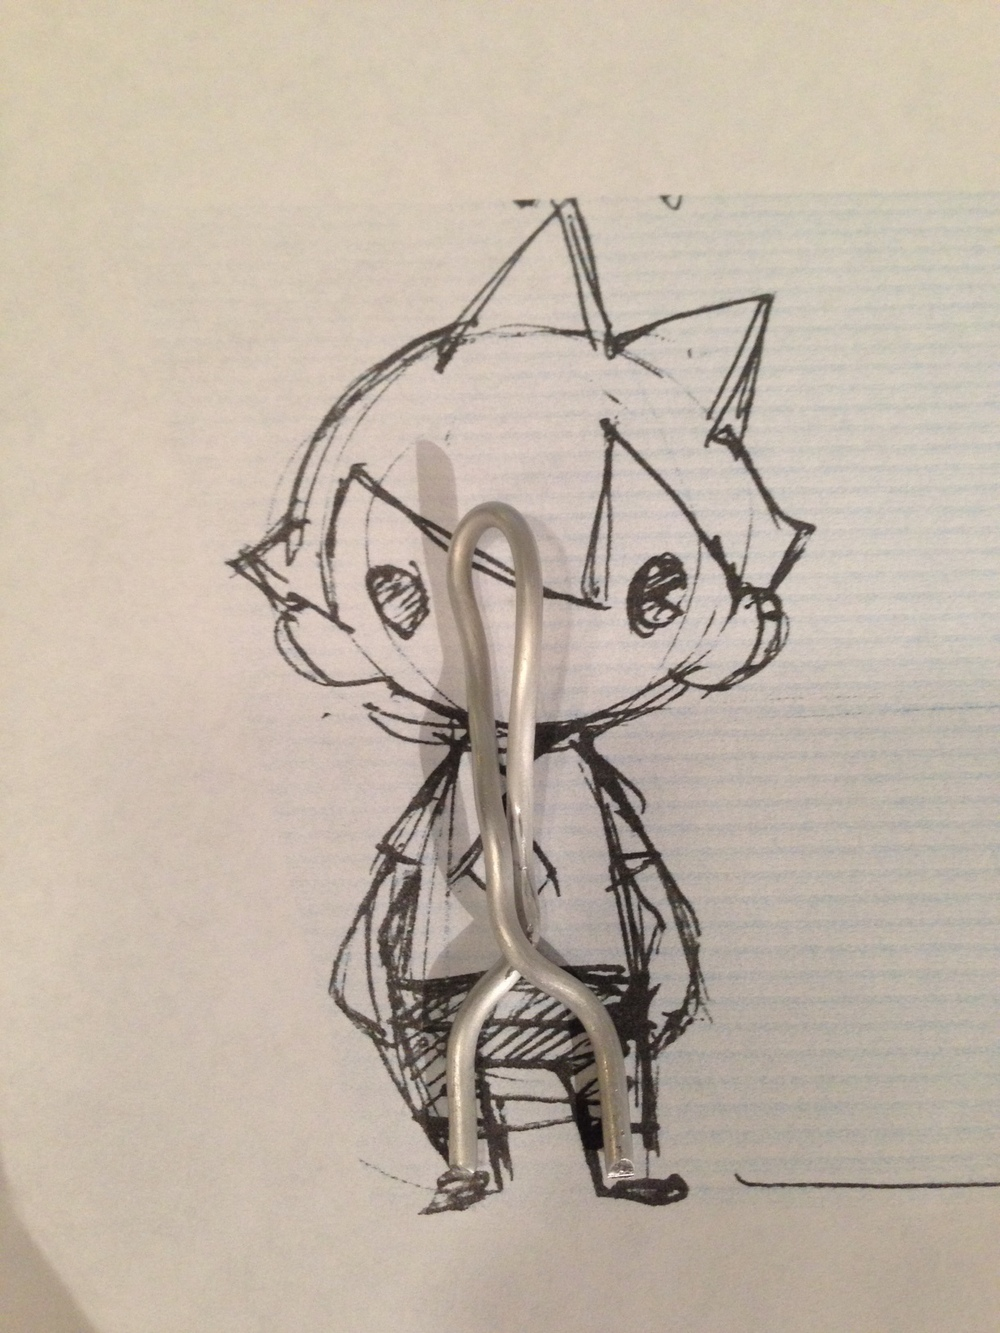 The tiny armature wire frame that I used as his skeleton.